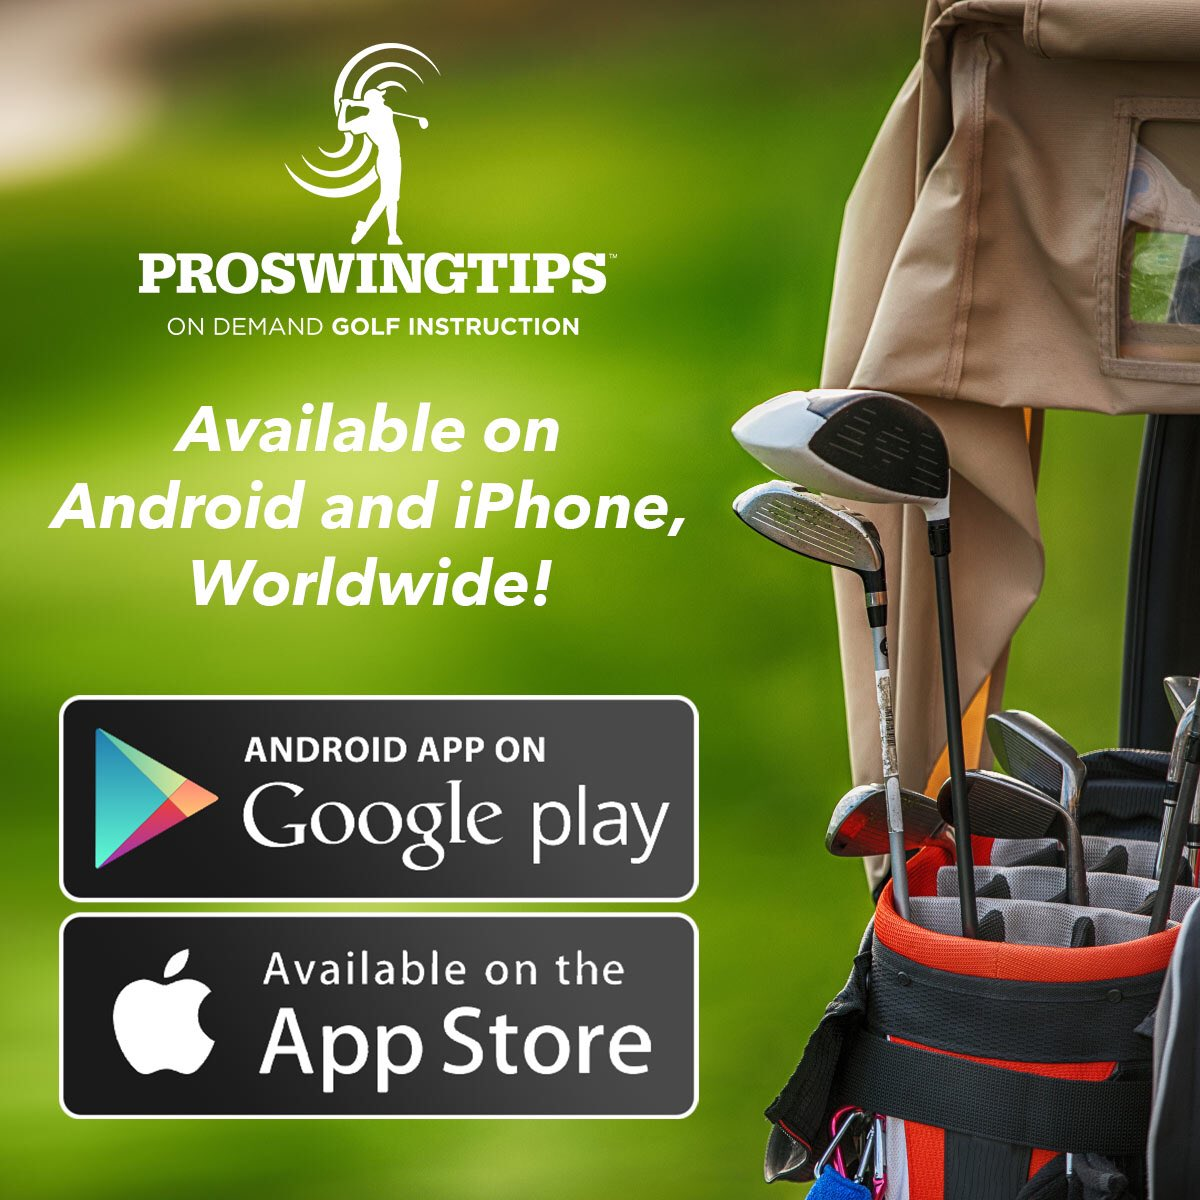 Download ProSwingTips to improve your golf game! Like &amp; Retweet for a chance to win a new PING Putter!!! #golf #ping #zurichclassic #Pga<br>http://pic.twitter.com/svyScLy5vc